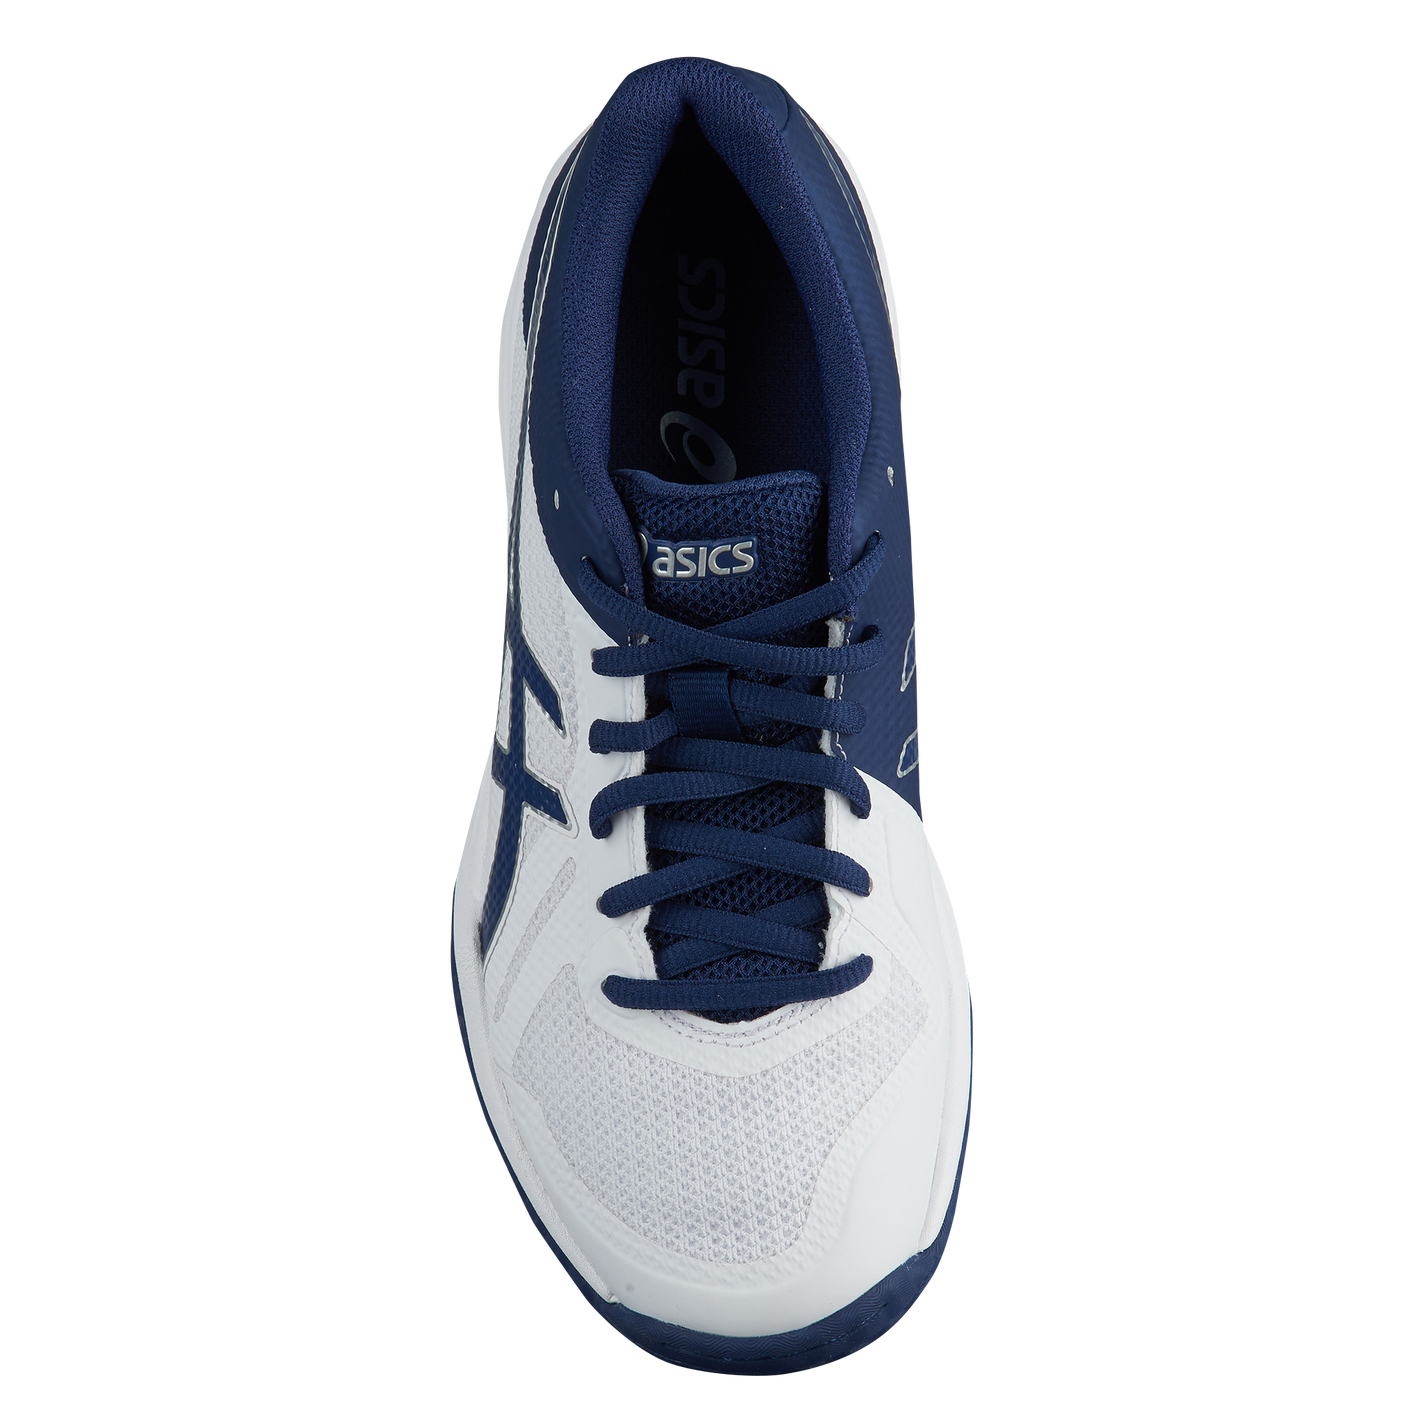 f6bee3ad7d8cc ASICS® GEL-Tactic 2 - Women s - Volleyball - Shoes - Real White Deep ...